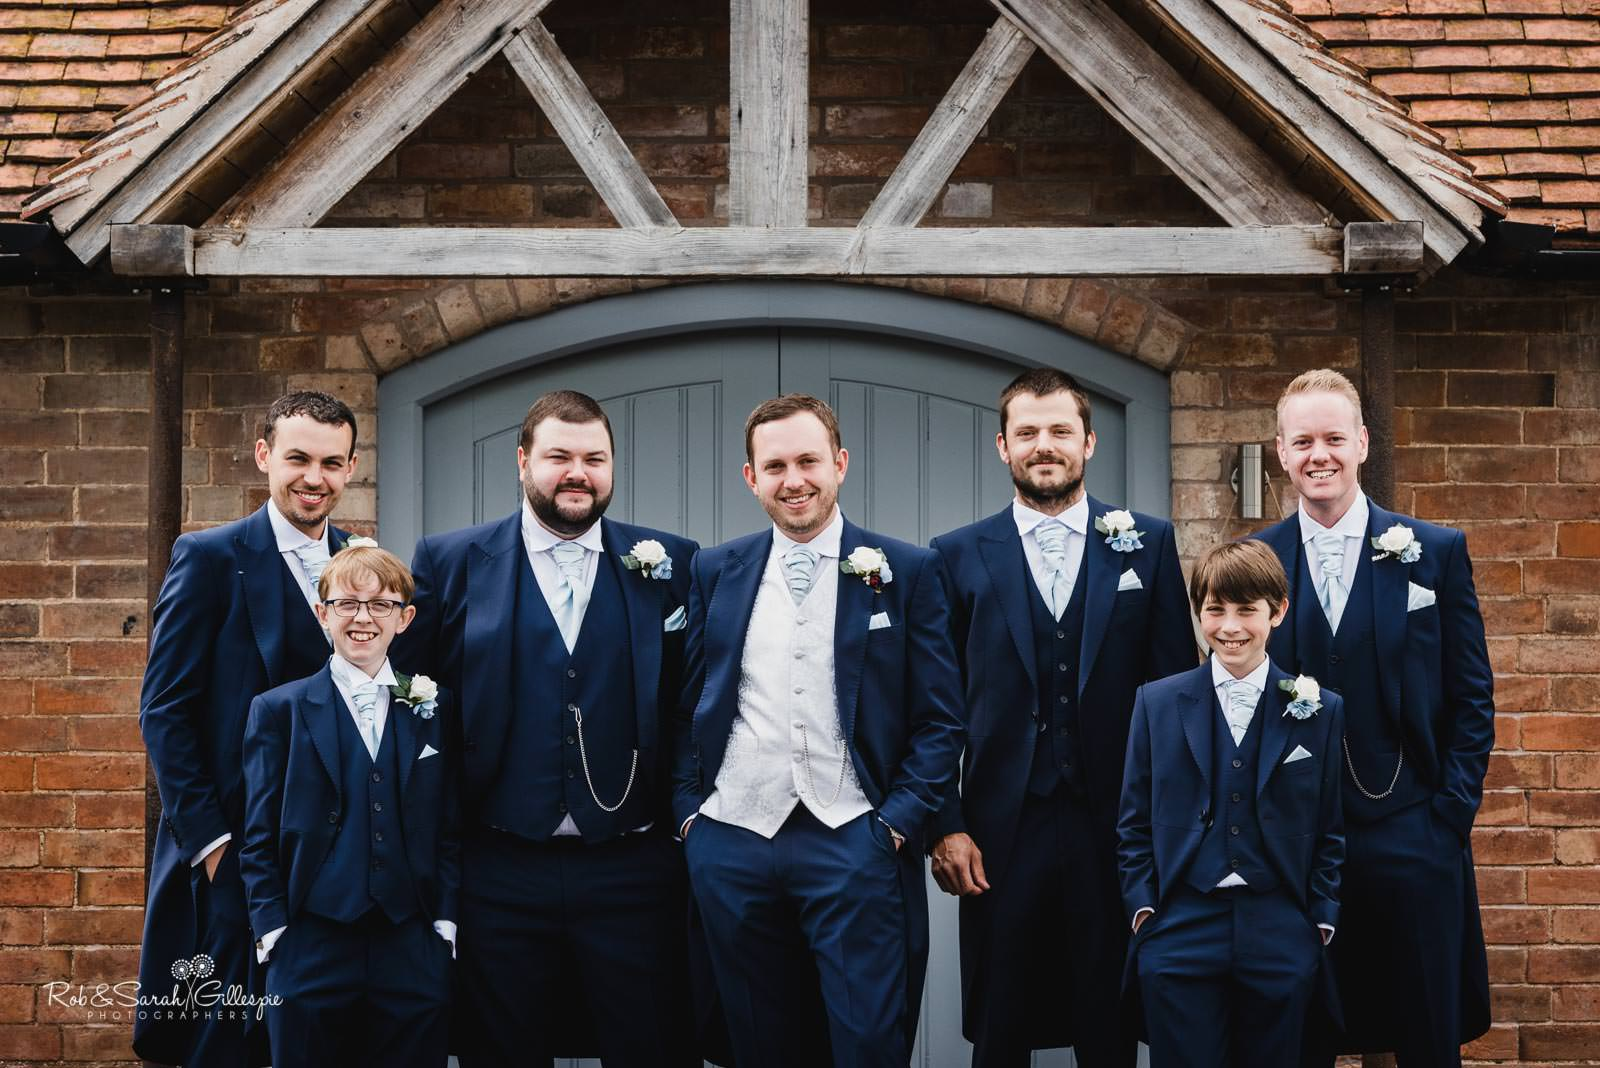 Group photo of groom and groomsmen at Swallows Nest Barn wedding